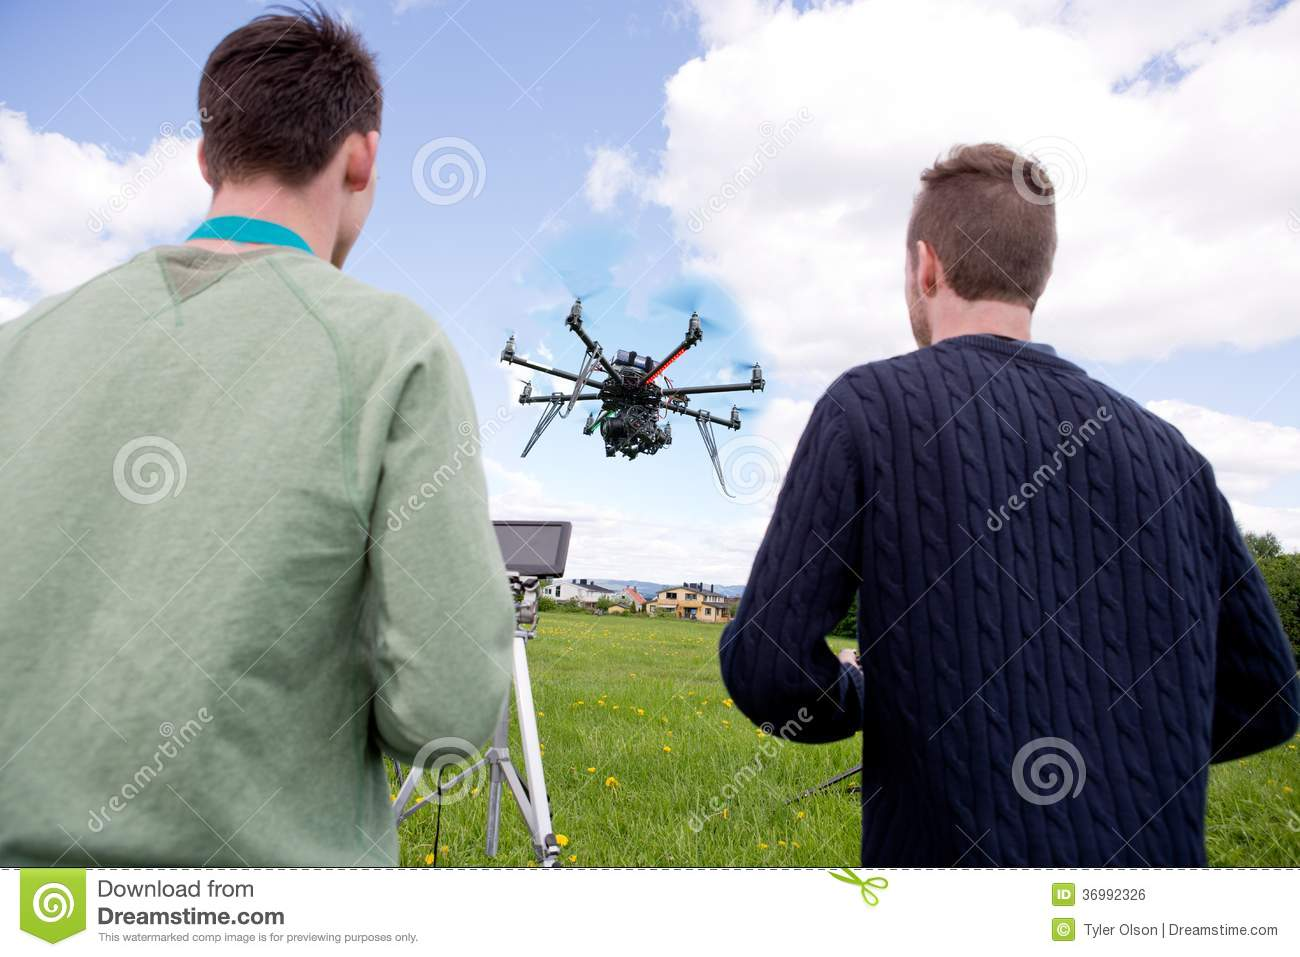 Pilot and Photographer Operating Photography Drone